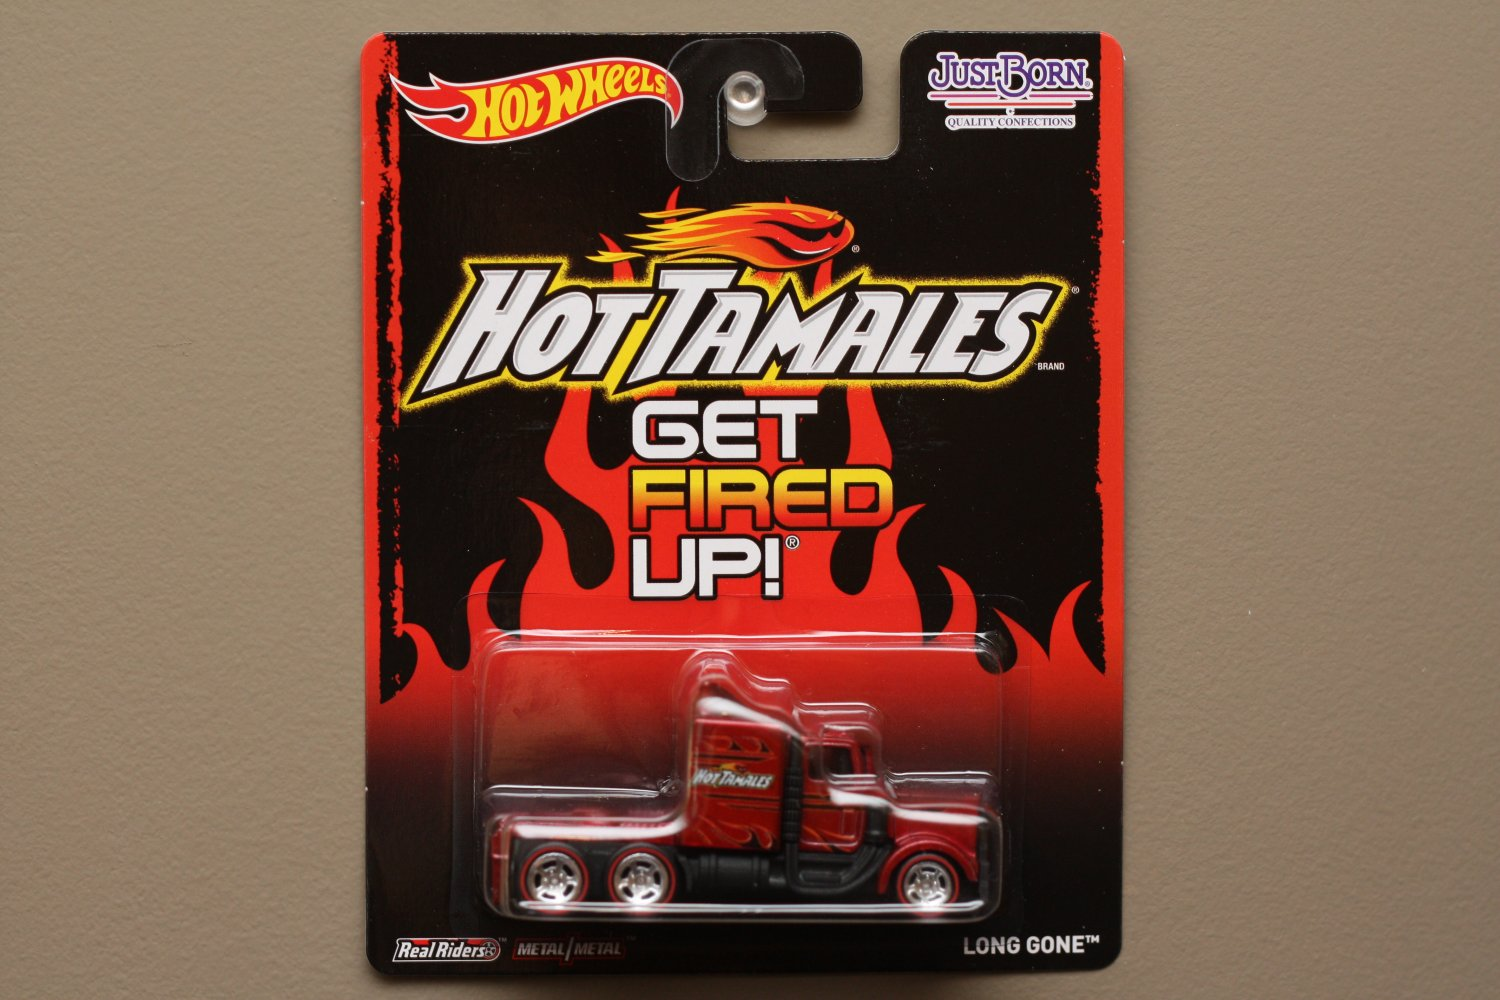 Hot Wheels 2014 Pop Culture Just Born COMPLETE SET of 6! (Mike And Ike, Peeps, Hot Tamales)